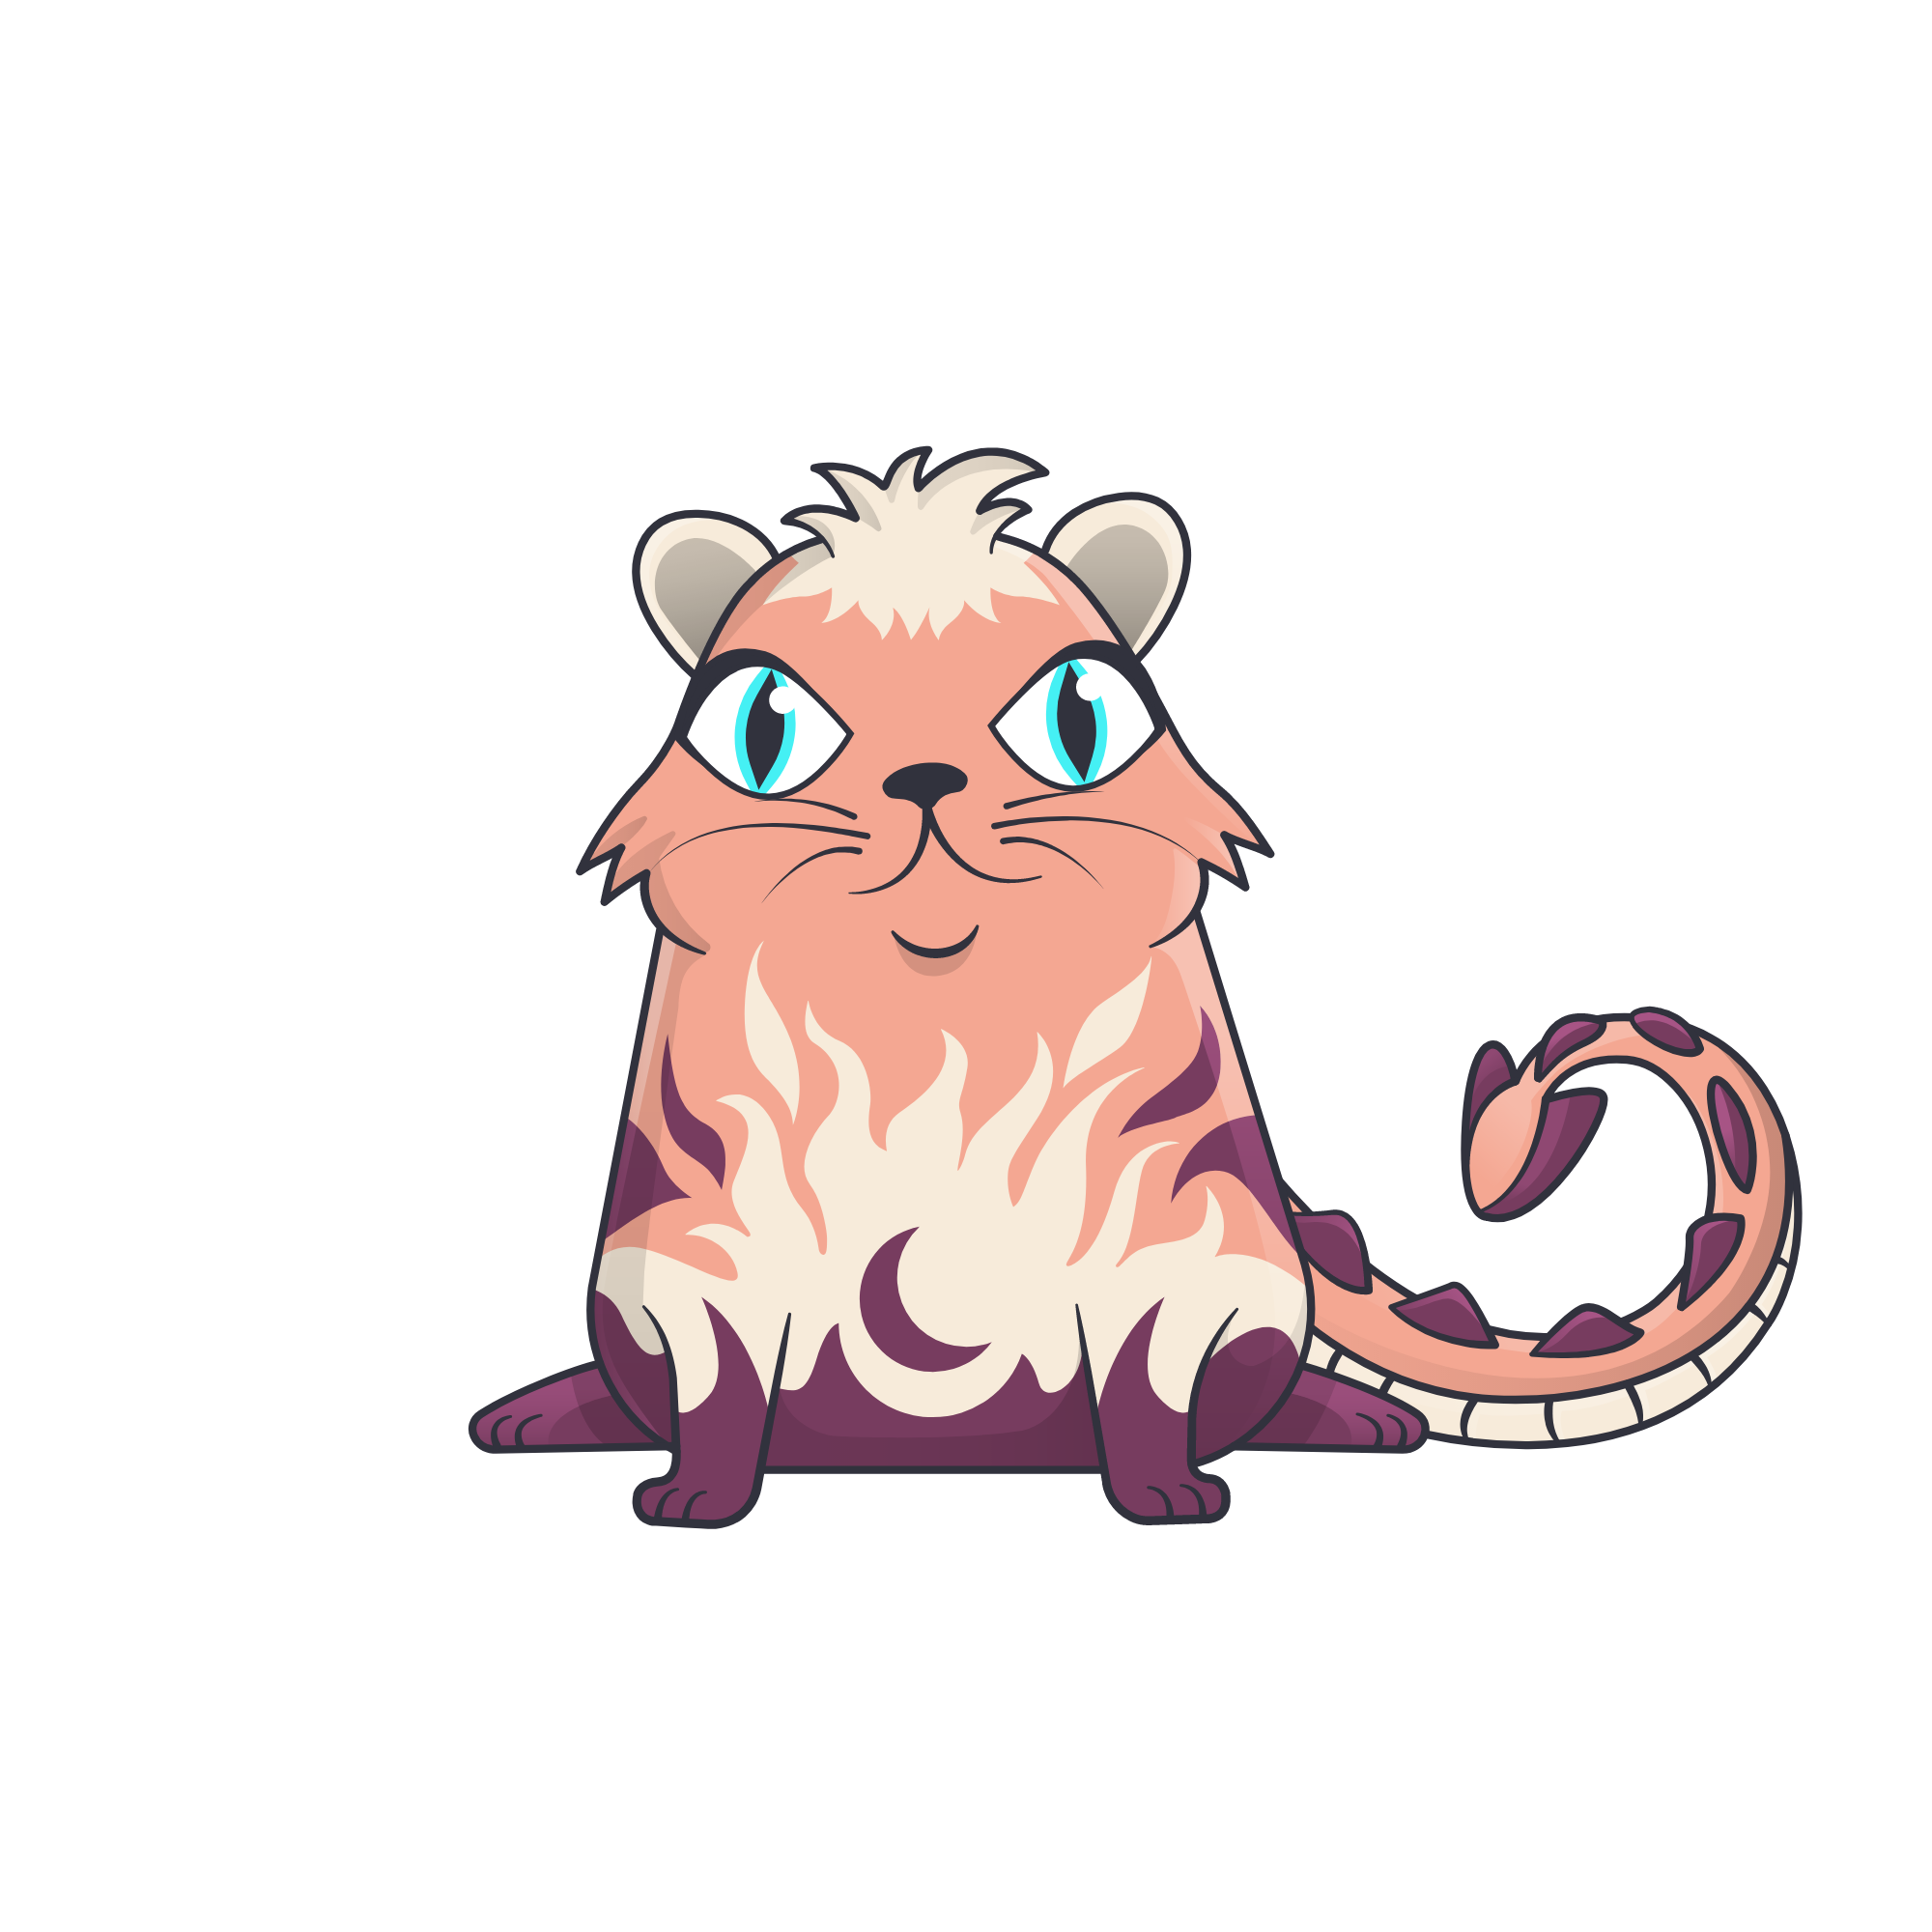 cryptokitty #1631911